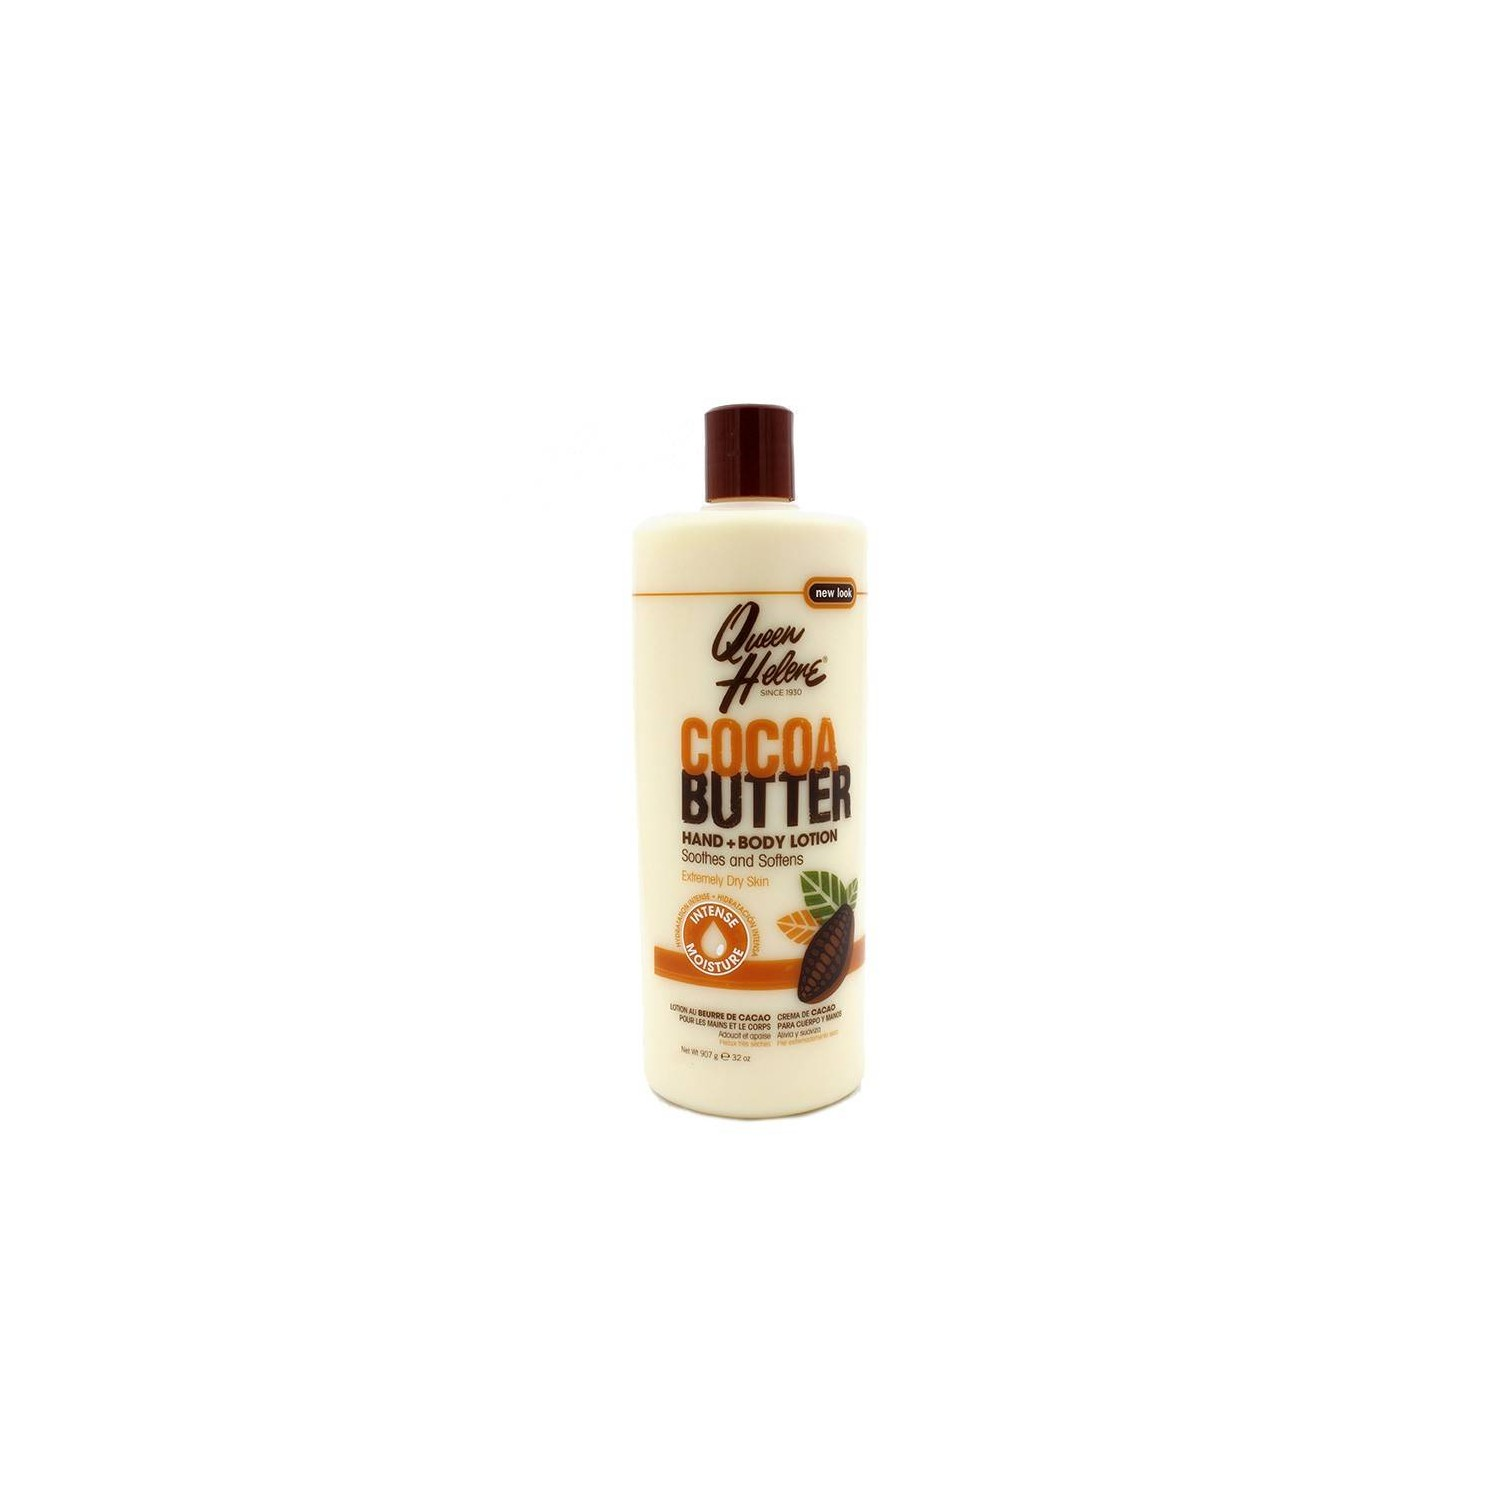 Queen Helene Cocoa Butter Lotion 907 Gr